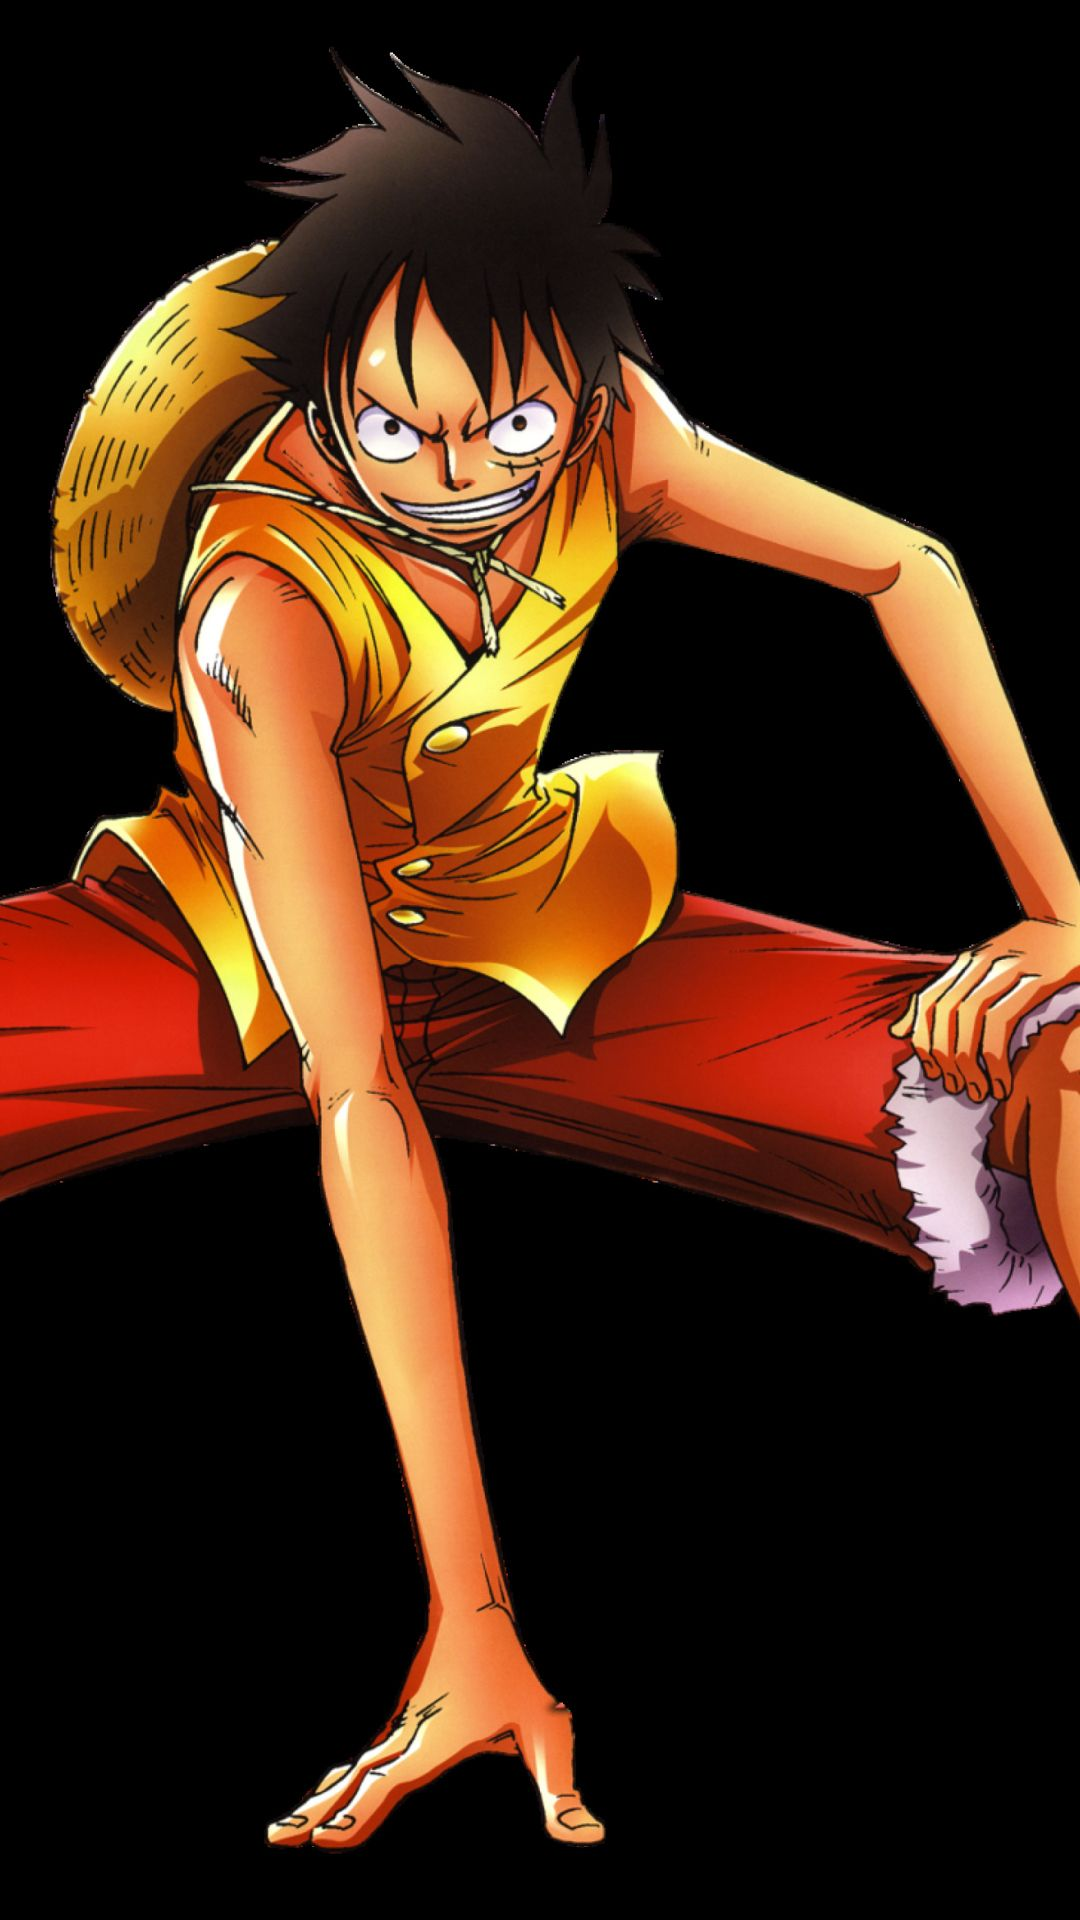 Wallpaper Iphone Luffy Lock Screen Monkey D Wallpaper Iphone Luffy Lockscreen One Piece Doraemon